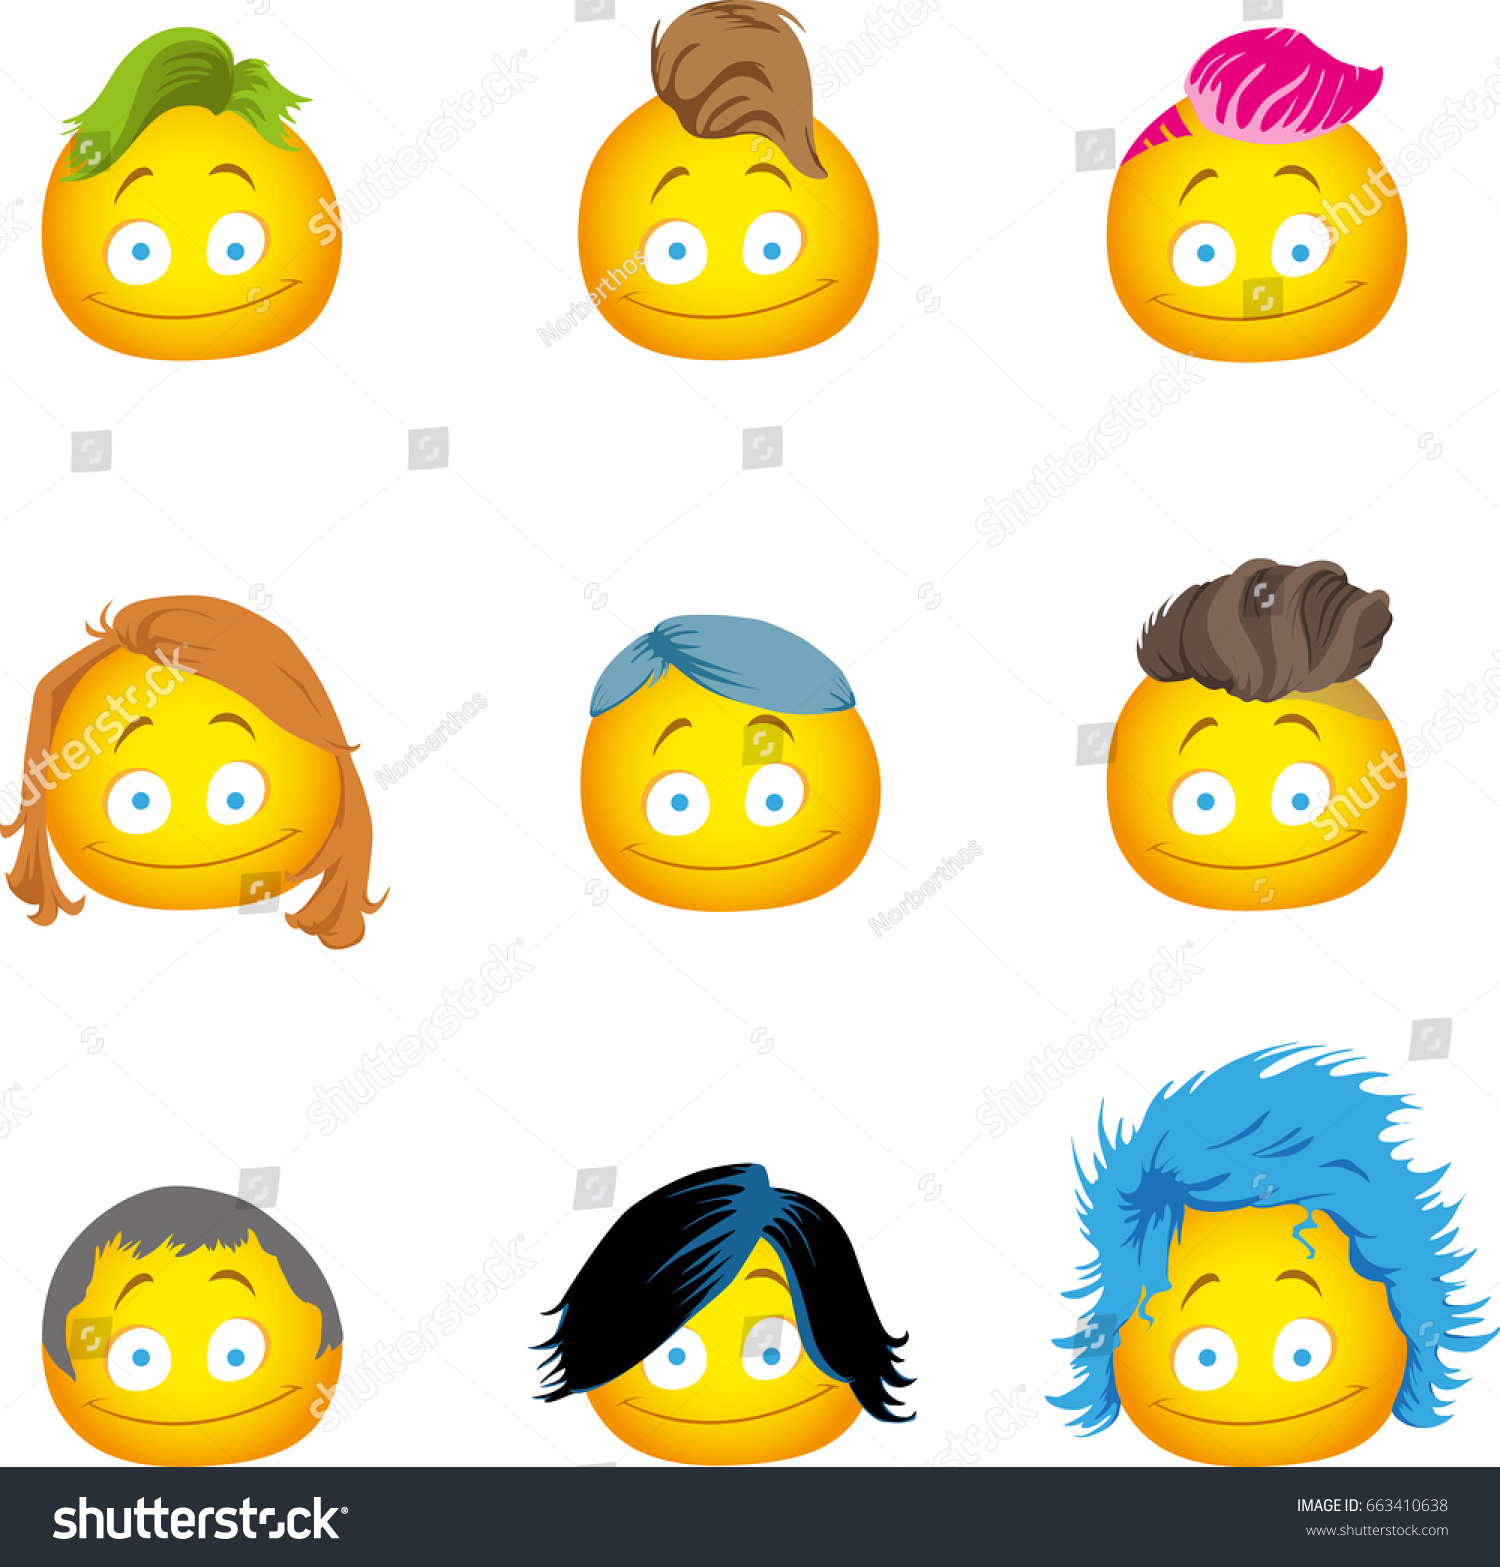 Hairy Emojis Several Hairstyles Stock Vector (Royalty Free) 4